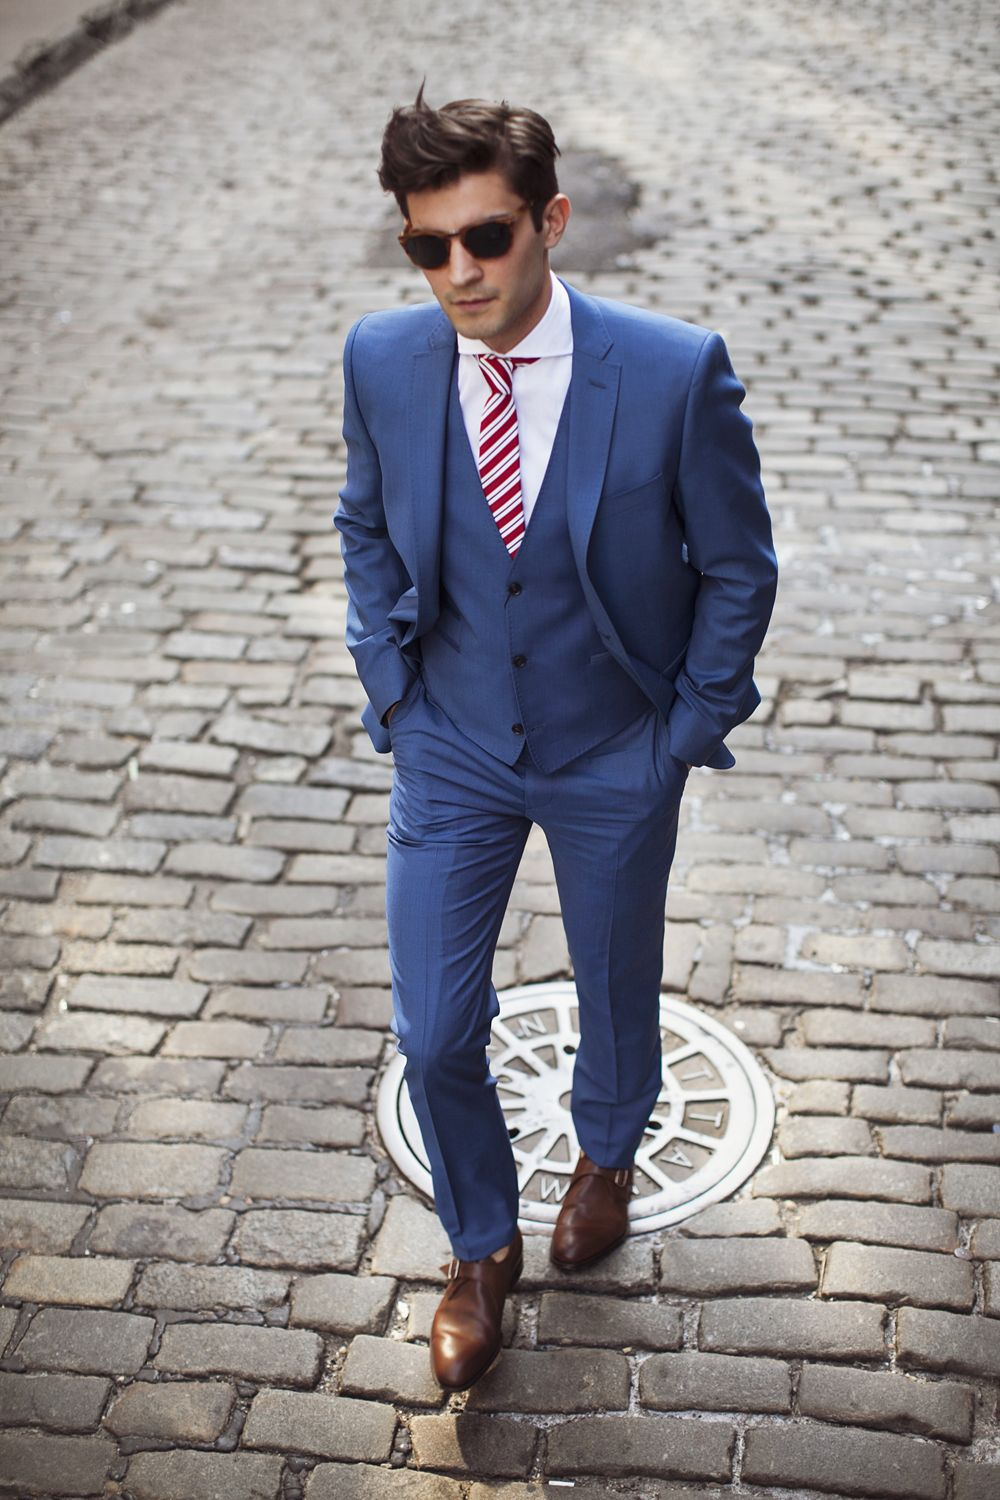 First Look: J.Lindeberg Spring/Summer 2013 | Suits, Style and ...